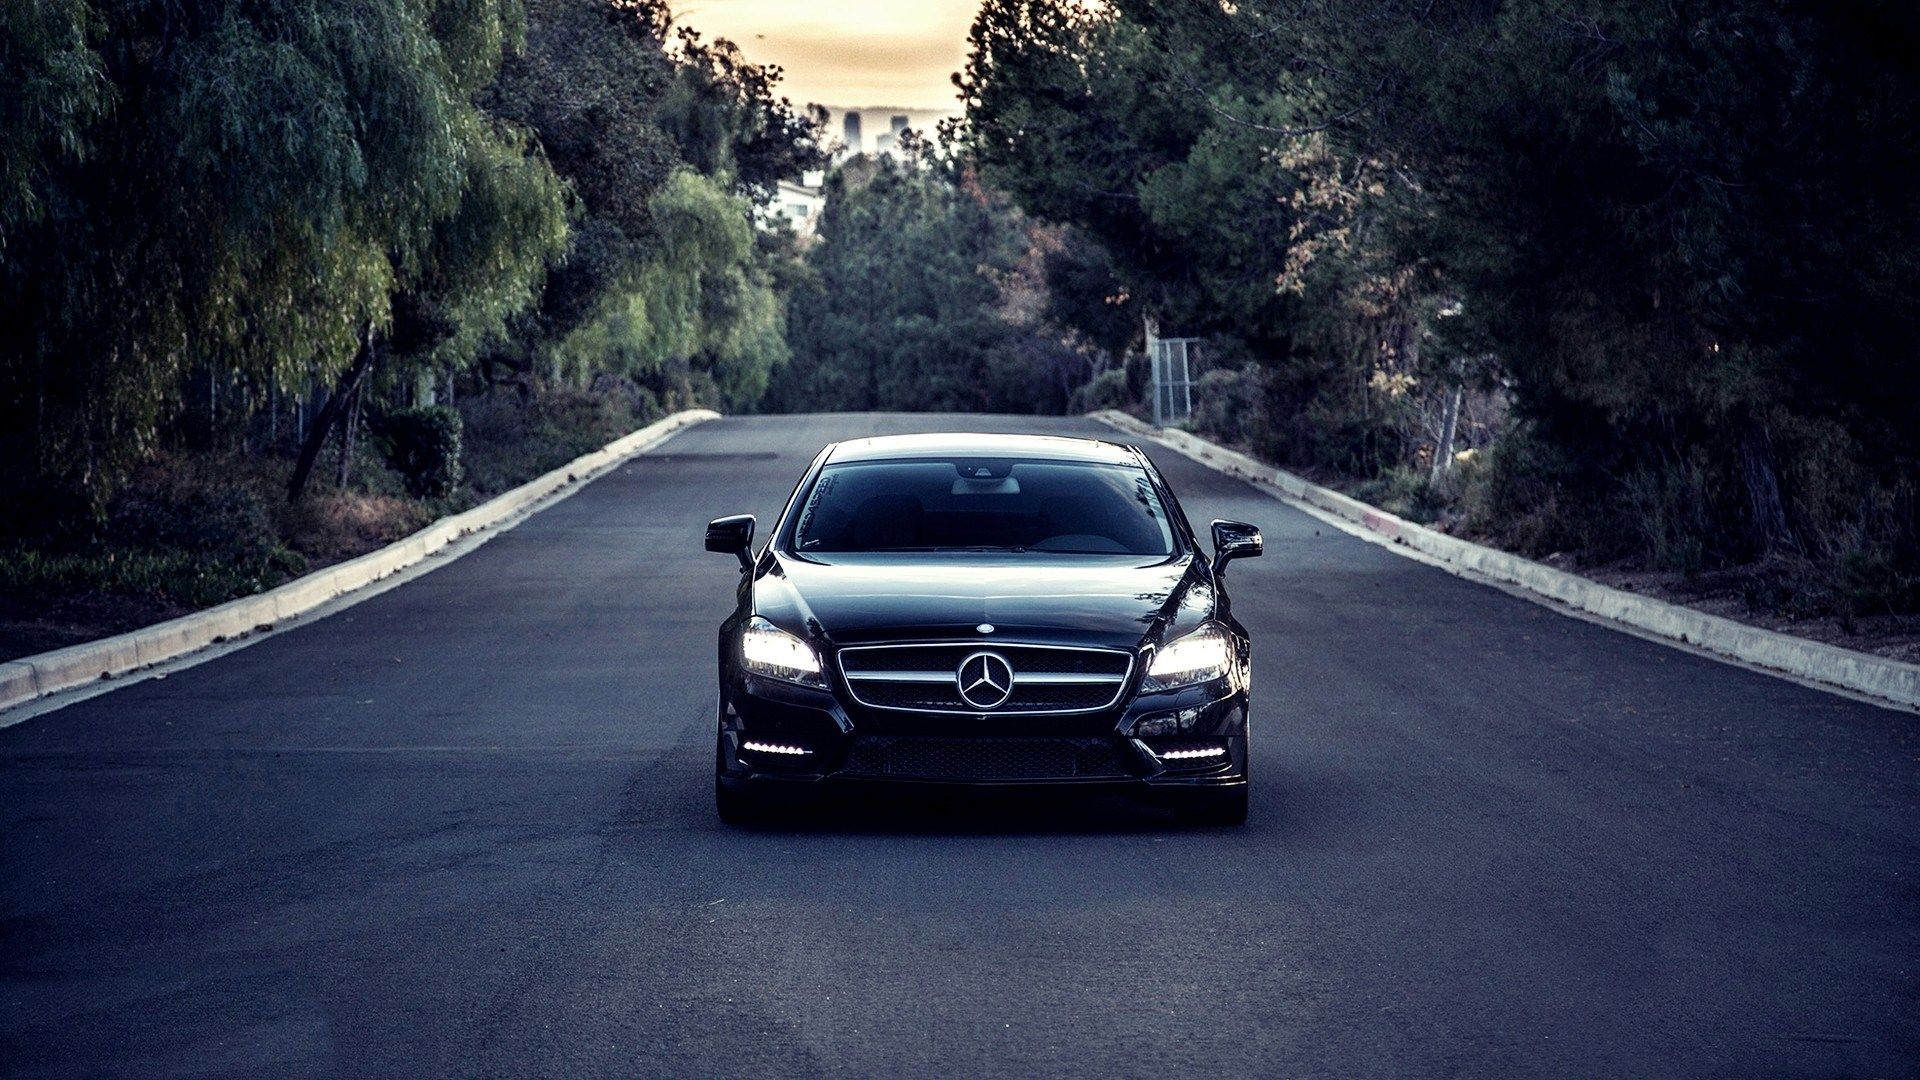 Mercedes Benz Hd Wallpapers Cars Mercedes Benz Wallpaper